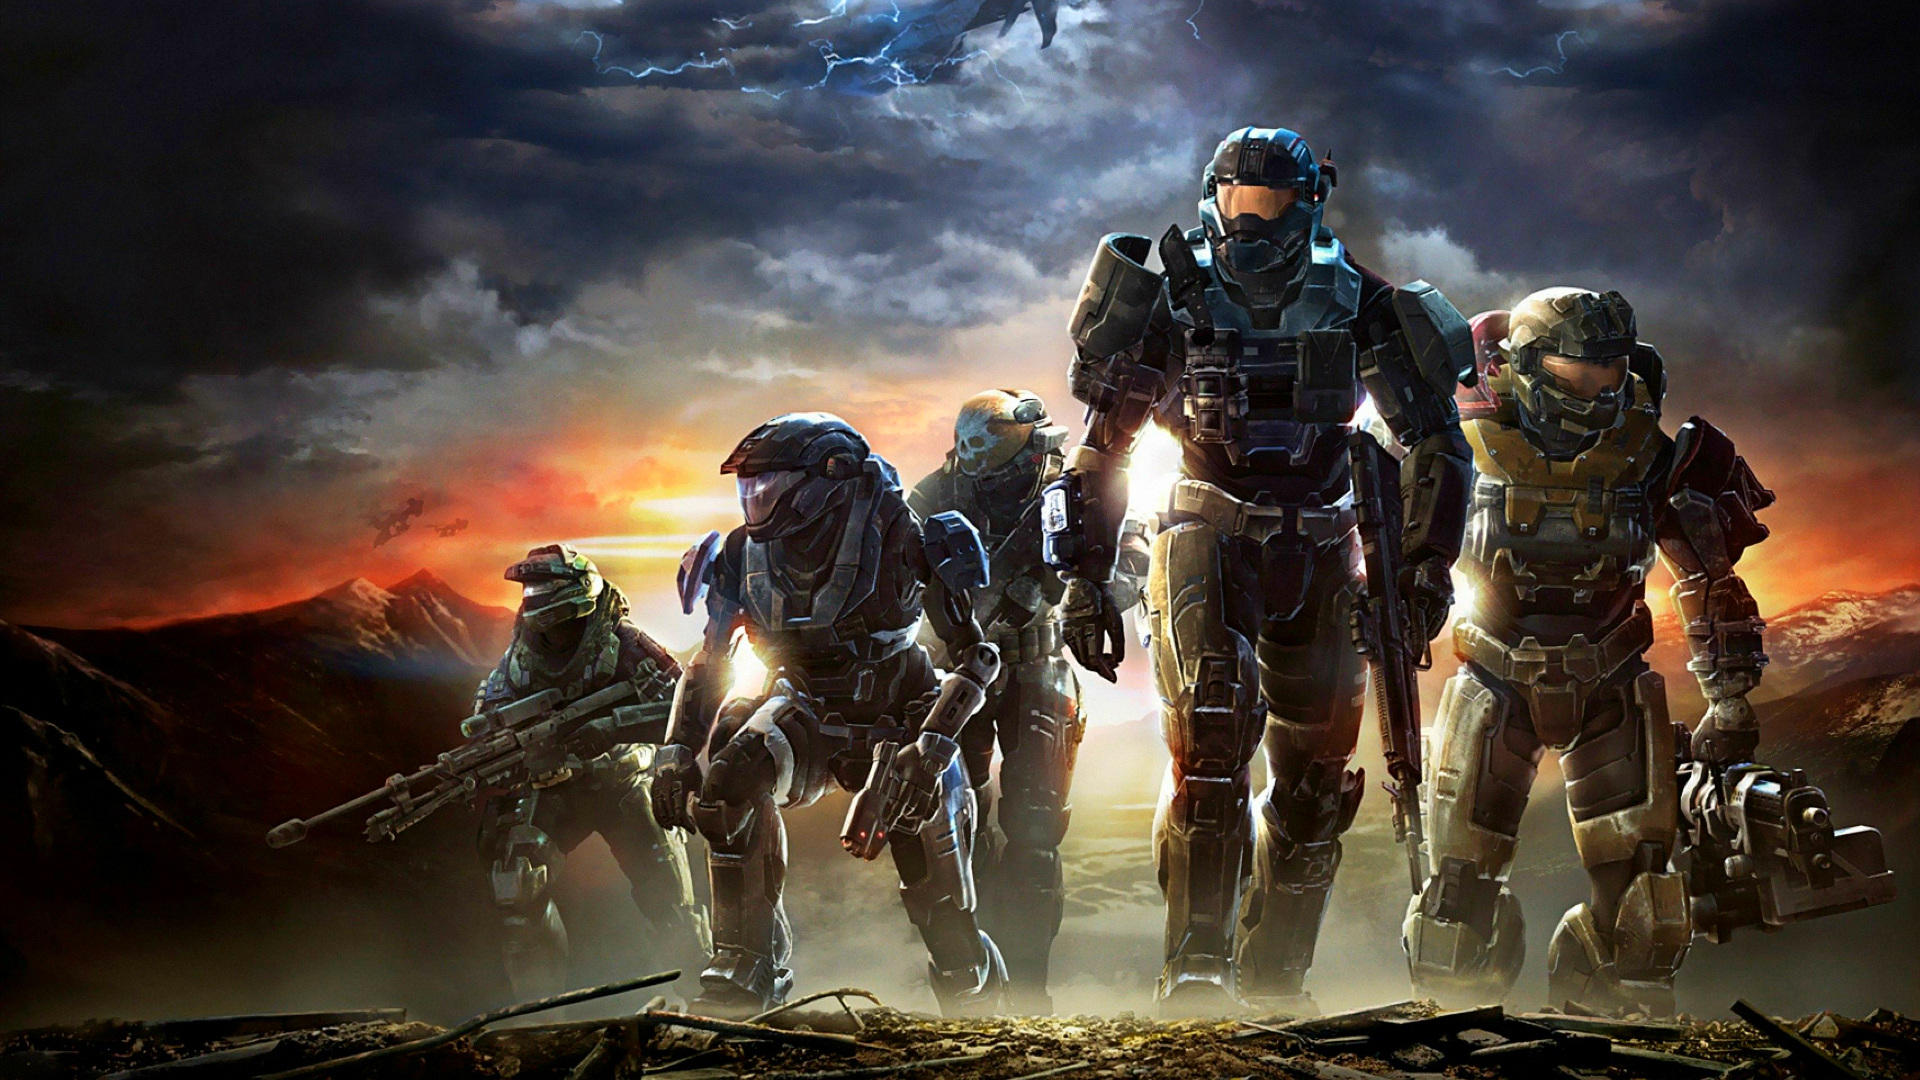 Halo Reach Available Now With The Master Chief Collection Stg